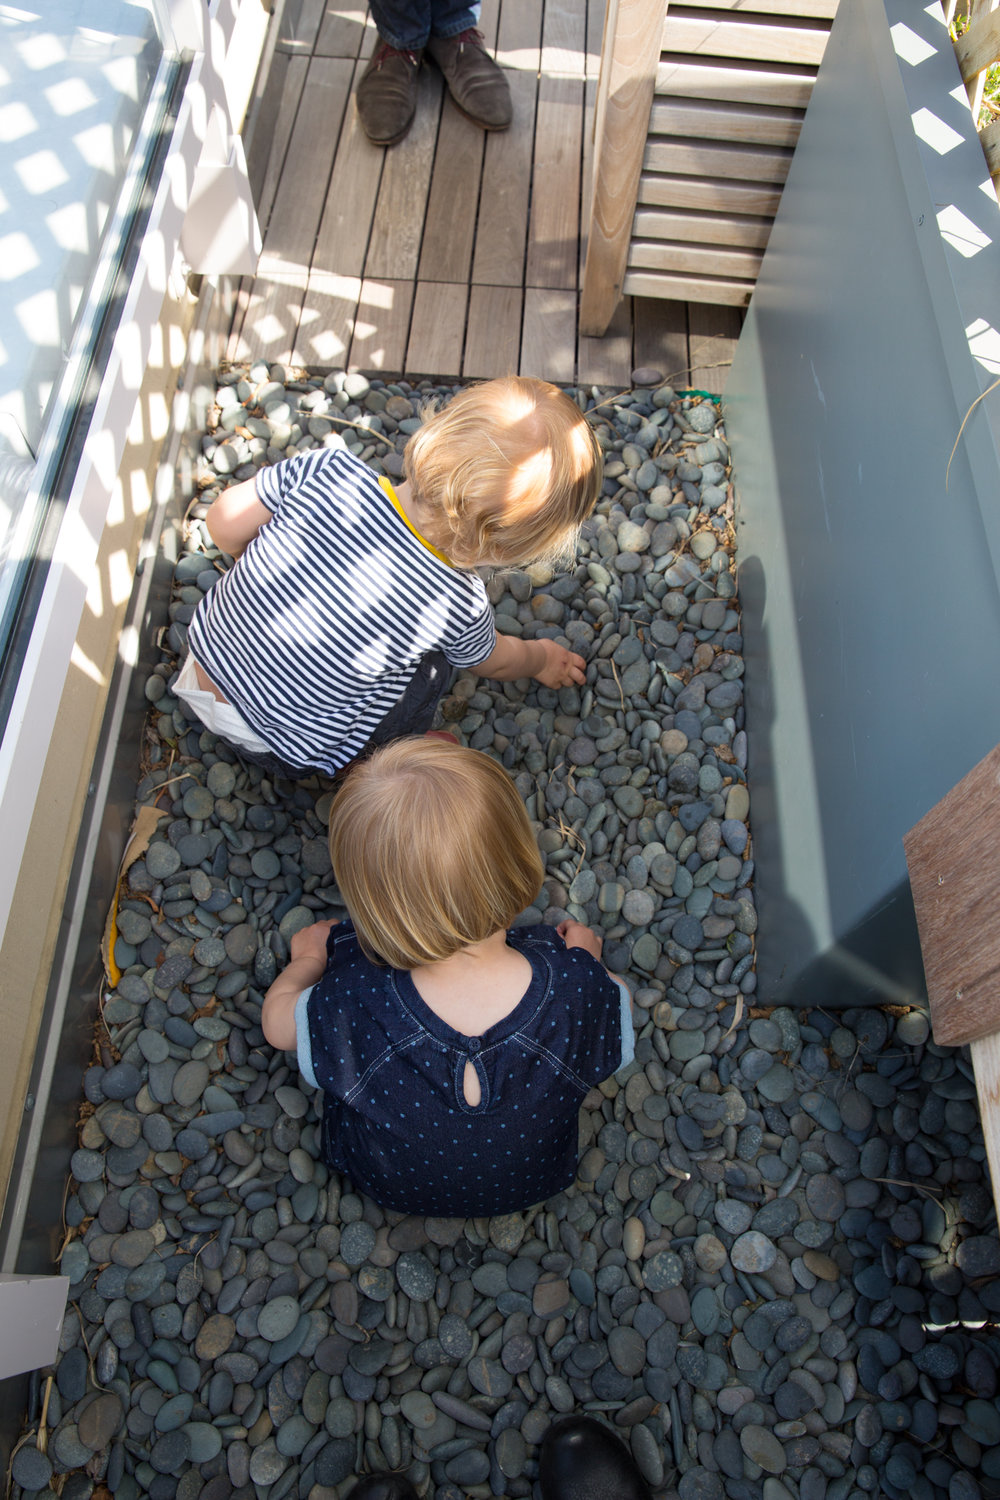 twins-playing-in-pebbles.jpg